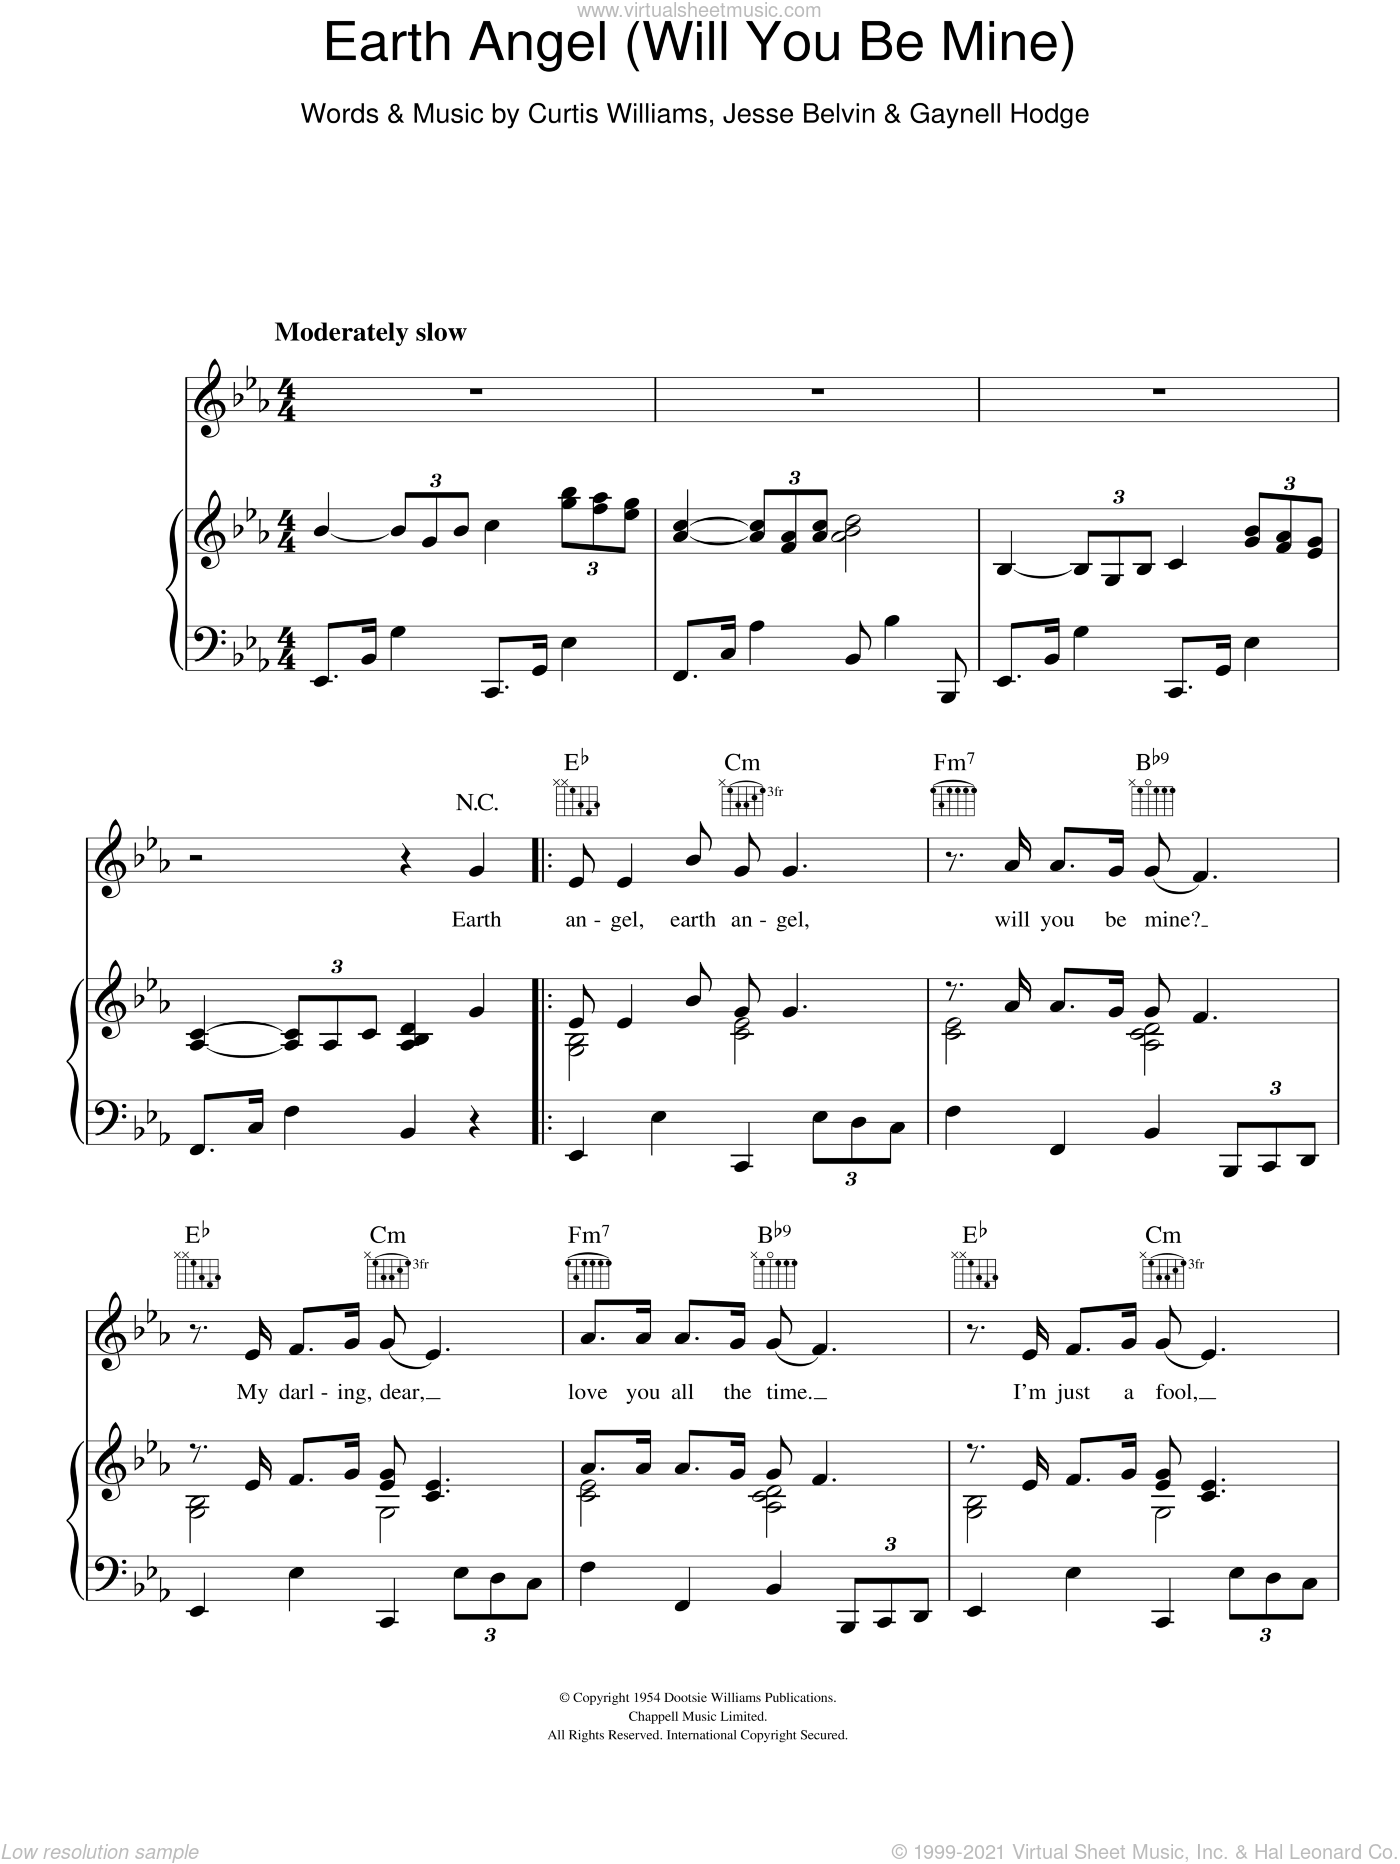 Earth Angel sheet music for voice, piano or guitar by Jesse Belvin